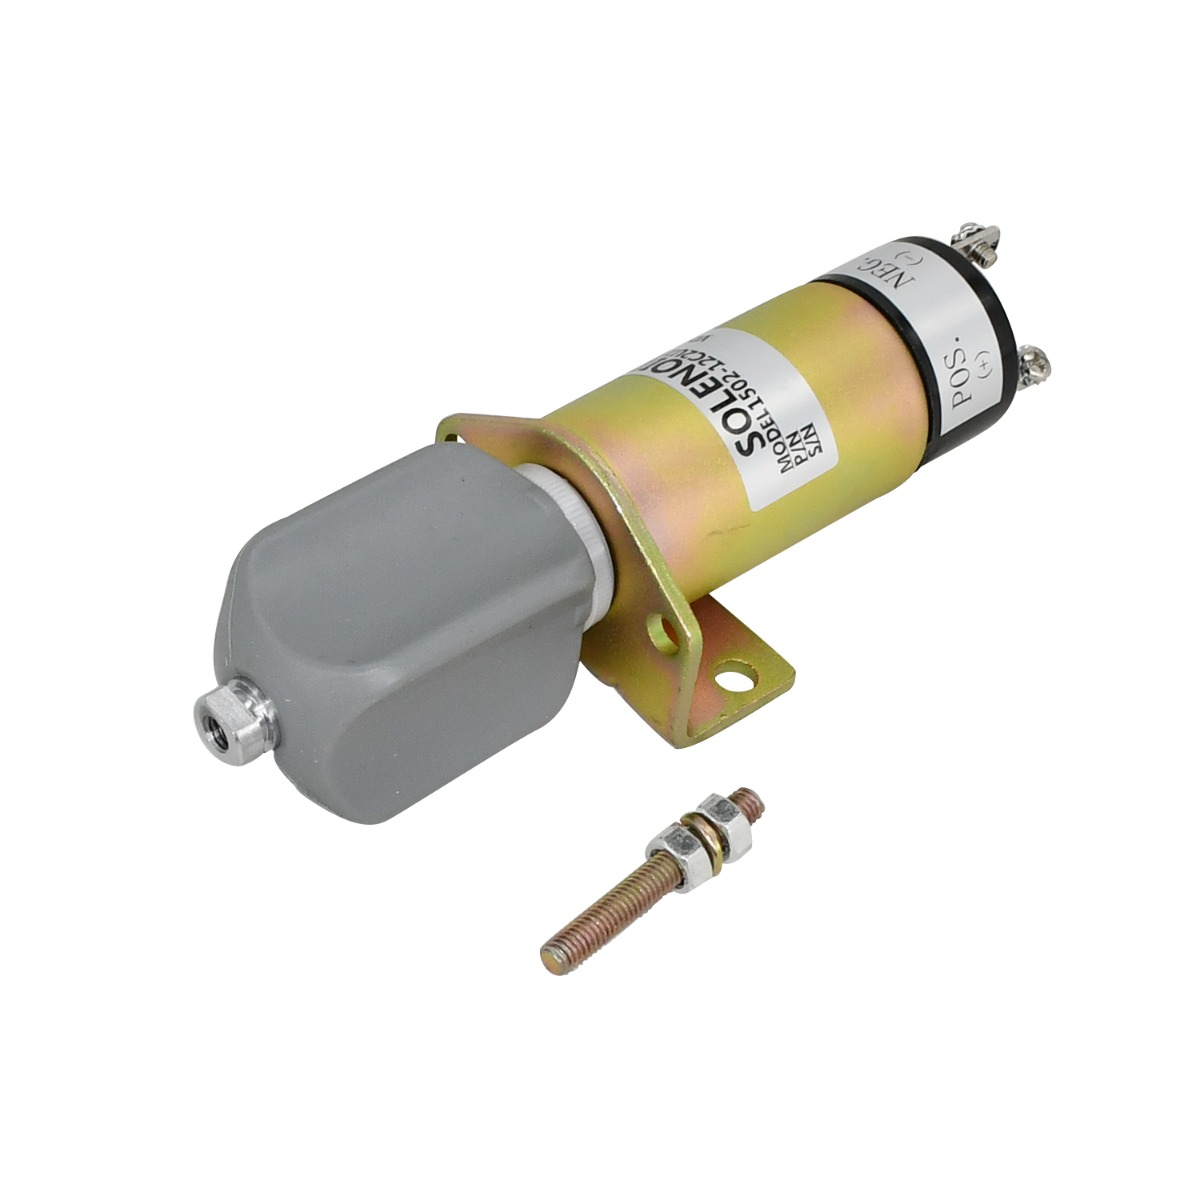 12V Shut Down Solenoid 1500-3026 Compatible With Skyjack Scissor Lift SJ600 SJ6826RT SJ6832RT SJ7027RT SJ7127RT SJ7135RT SJ800 SJ8243RT SJ8831RT SJ8841RT SJ8850RT